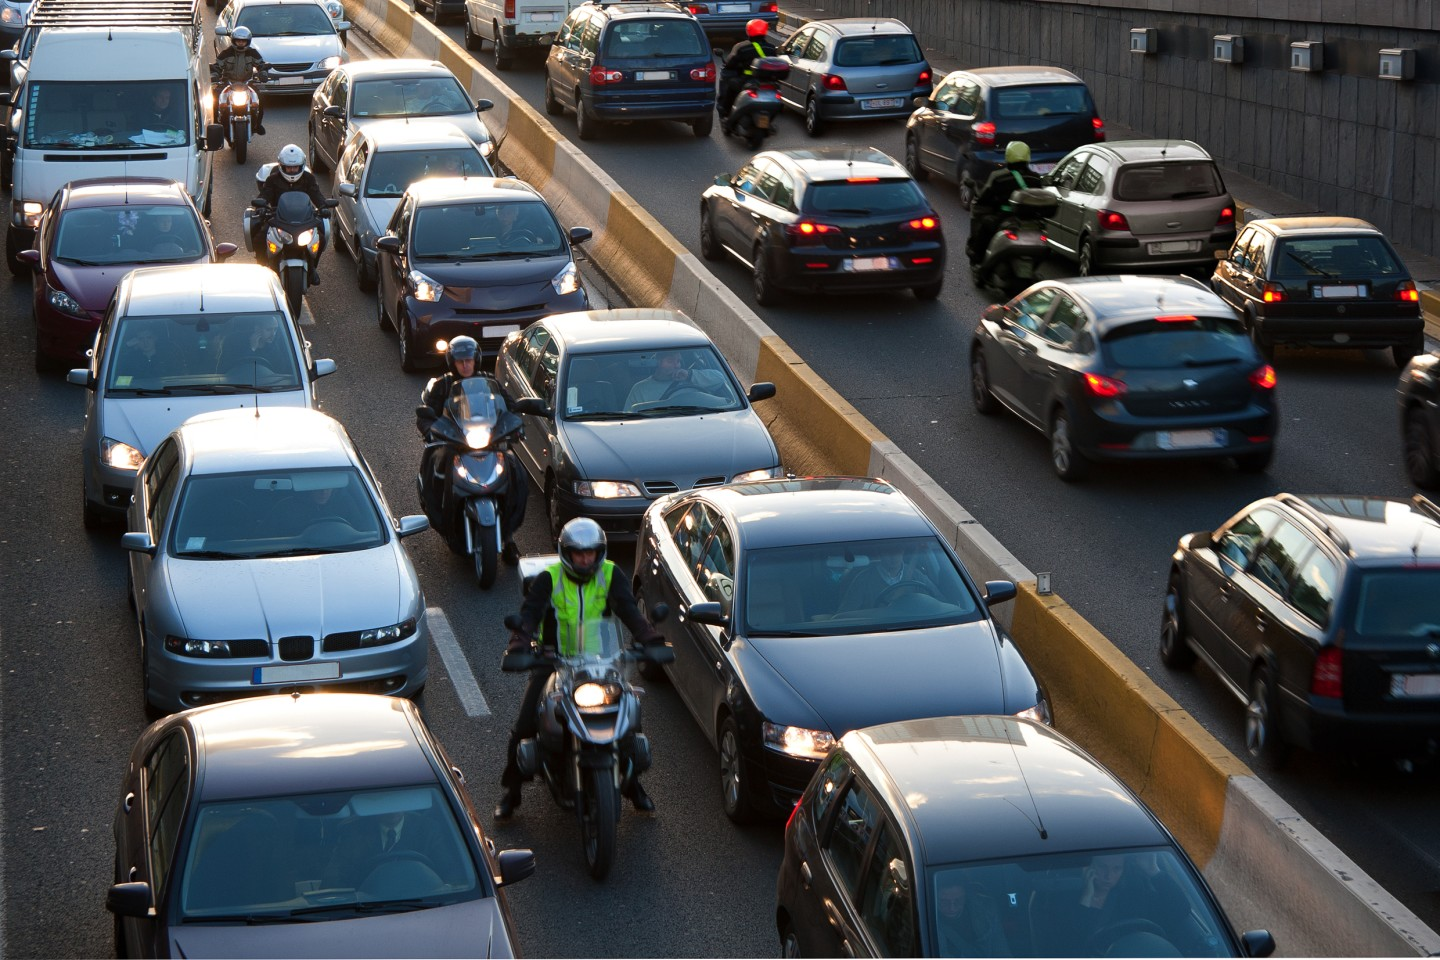 motorcyclists lane filtering in traffic